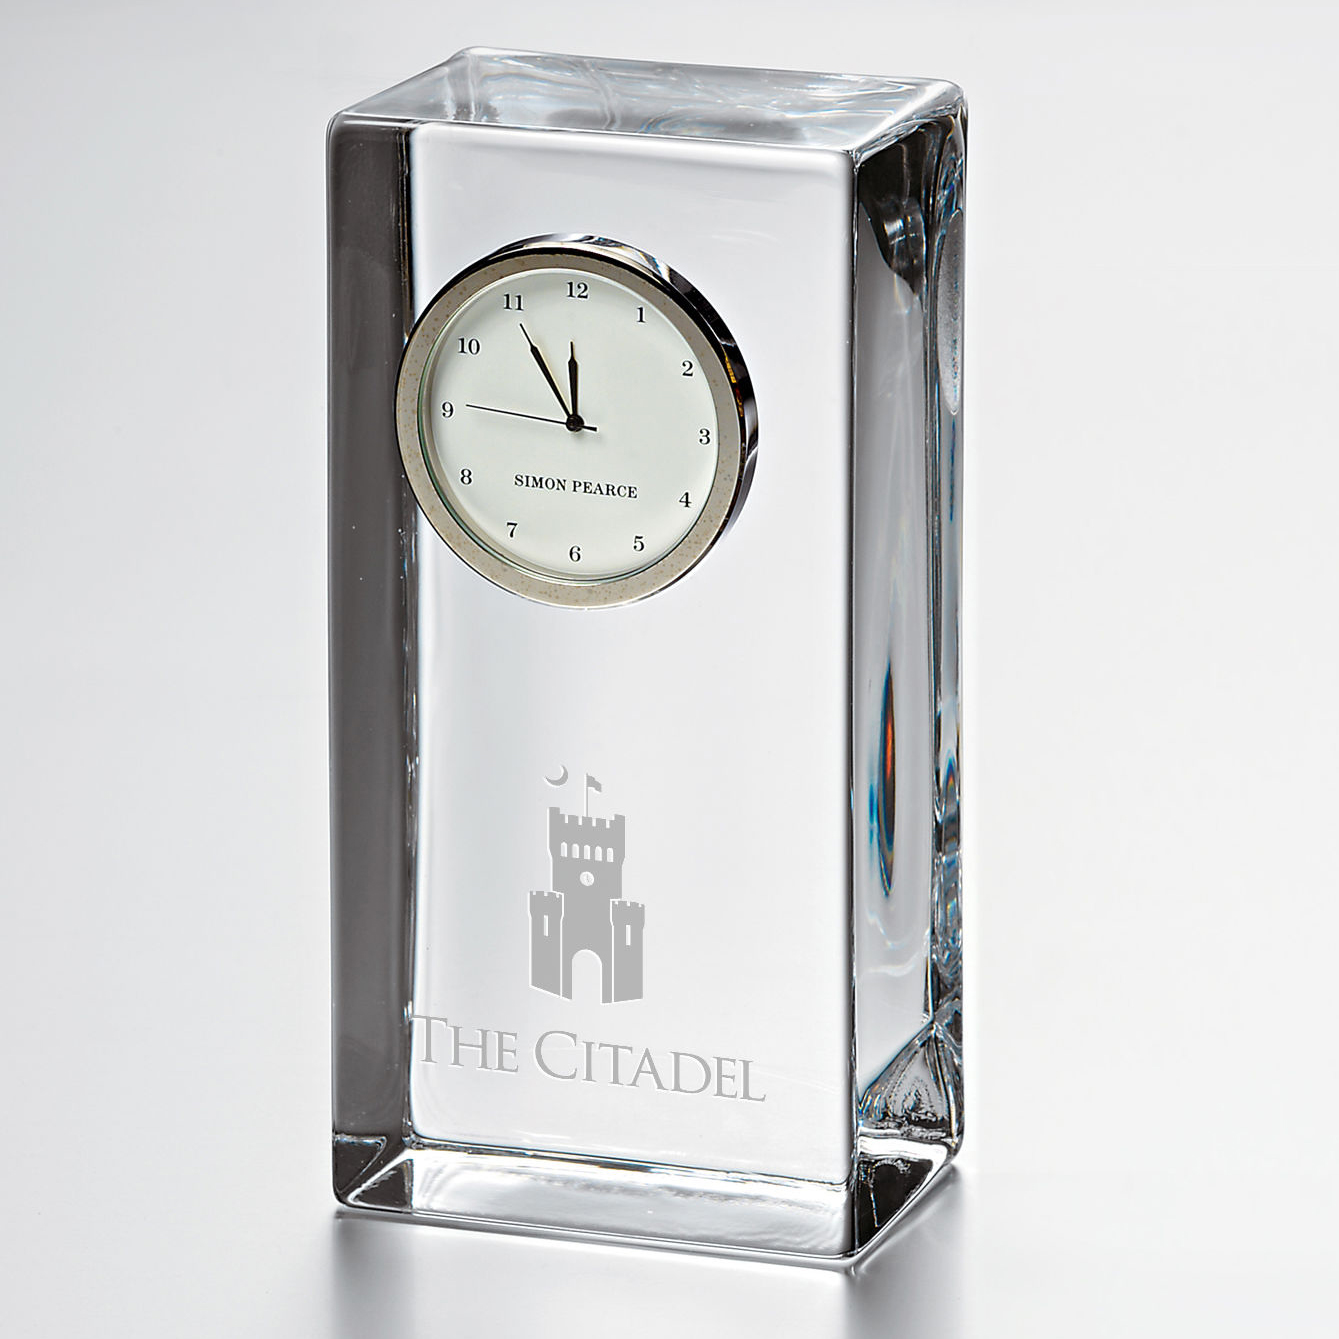 Citadel Tall Glass Desk Clock by Simon Pearce